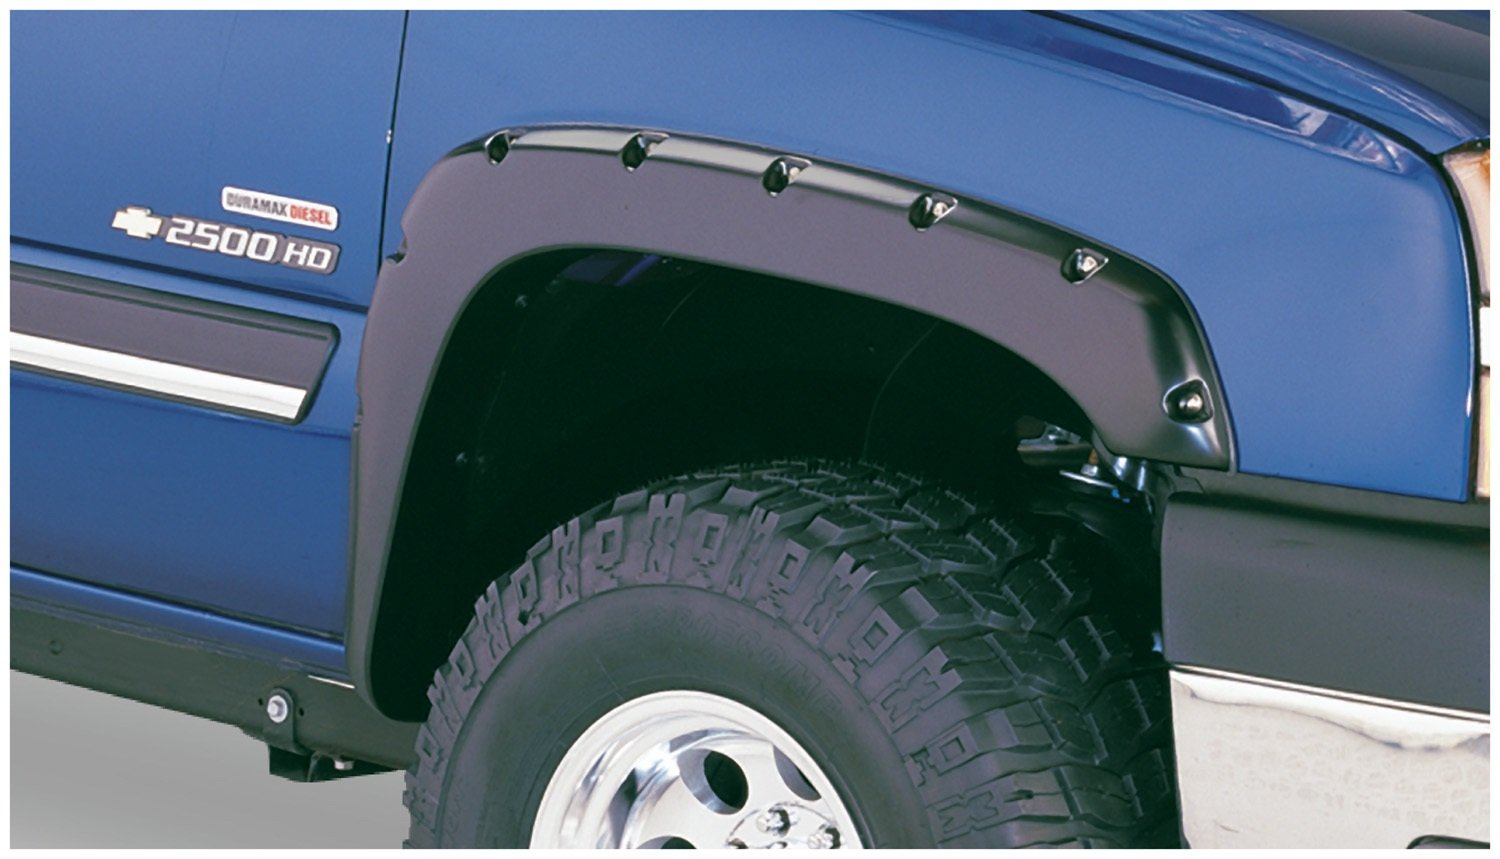 Silverado 2003 chevy silverado 1500 accessories : Amazon.com: Bushwacker 40918-02 Chevrolet Pocket Style Fender ...